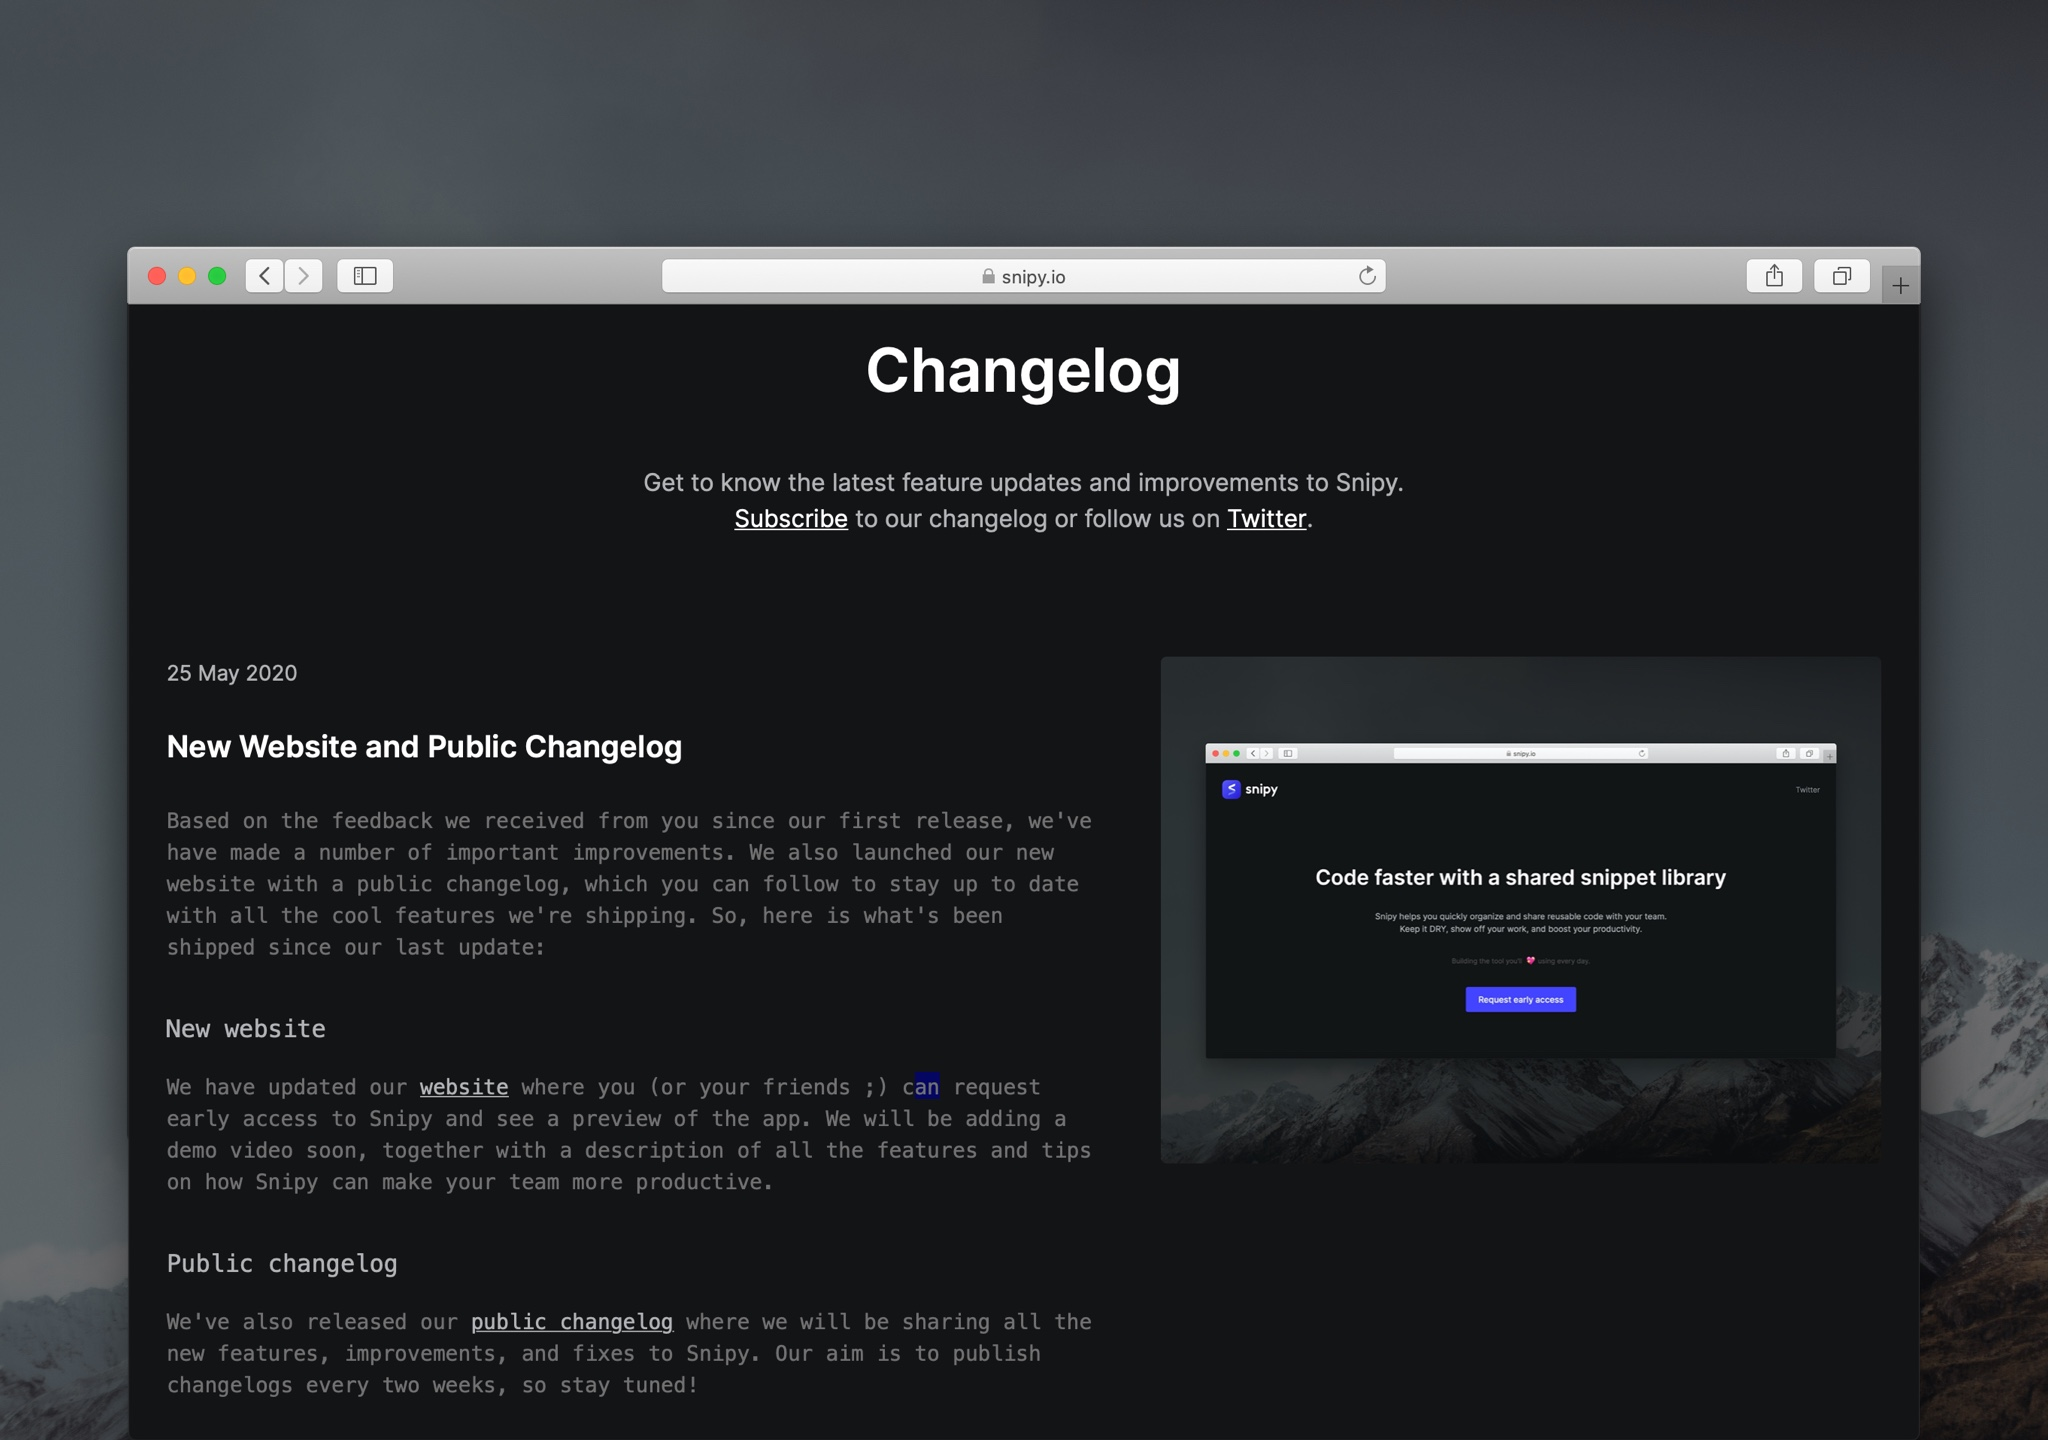 New Website and Public Changelog